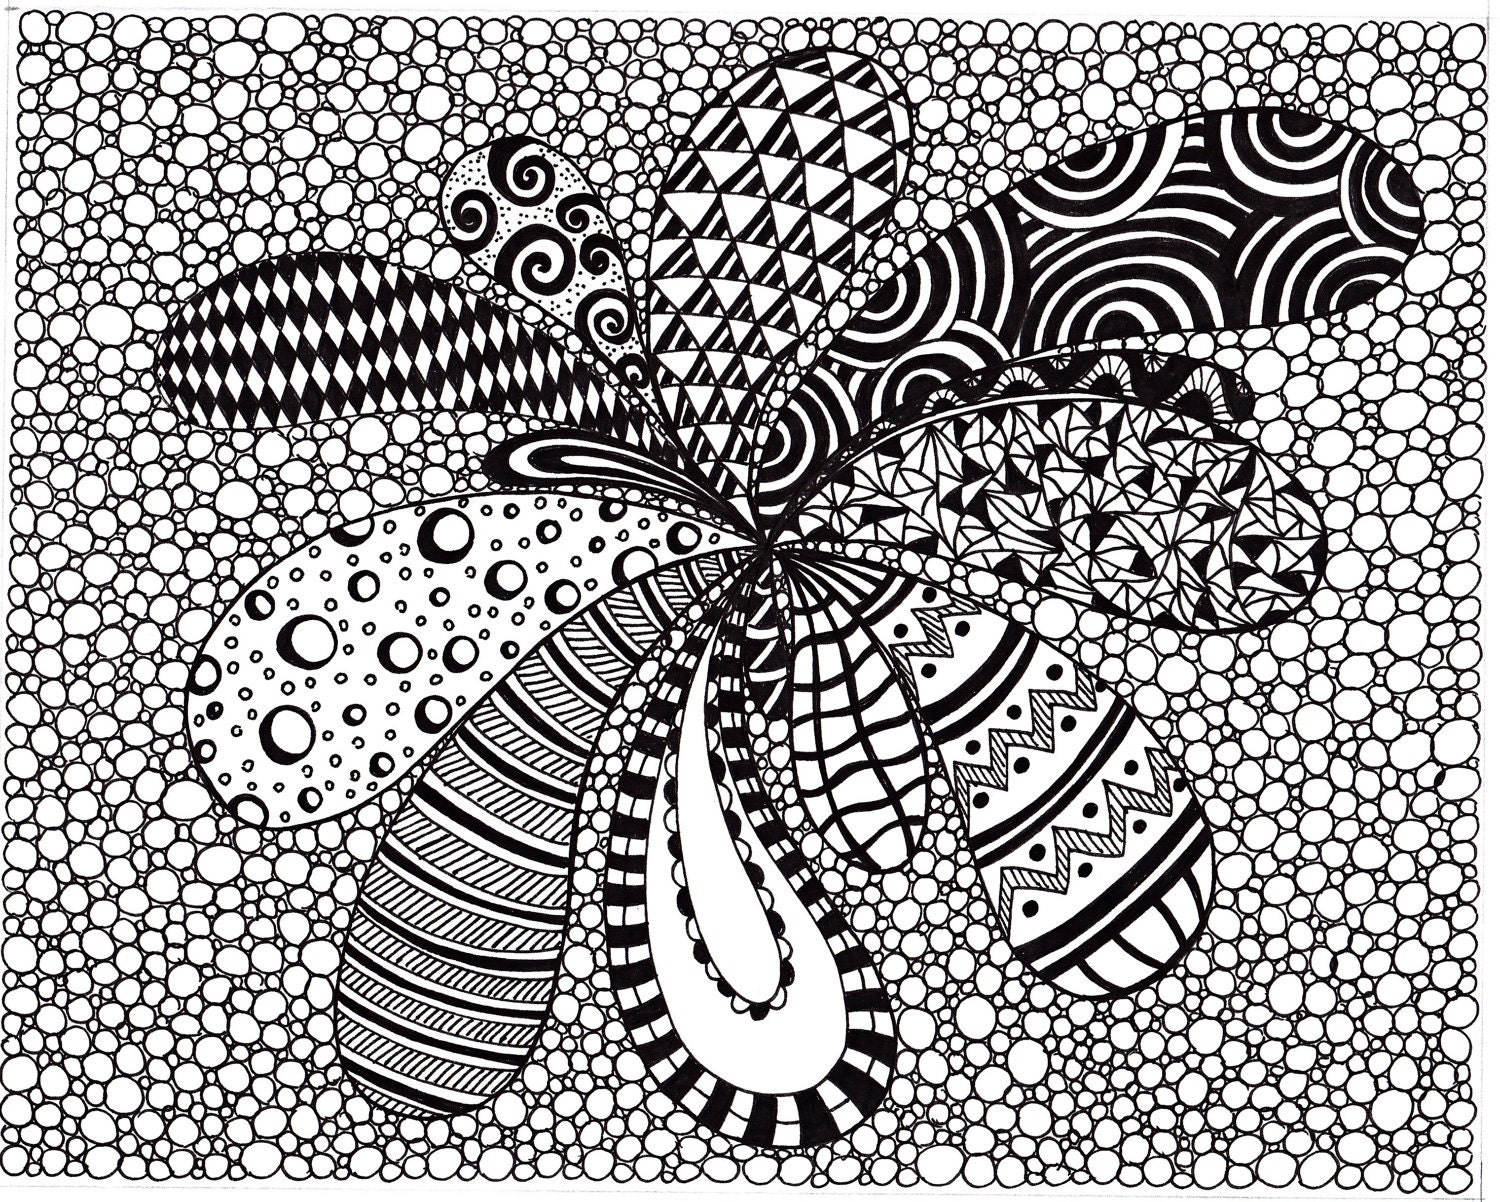 Zentangle Inspired Abstract Art Print Ink Drawing By JoArtyJo